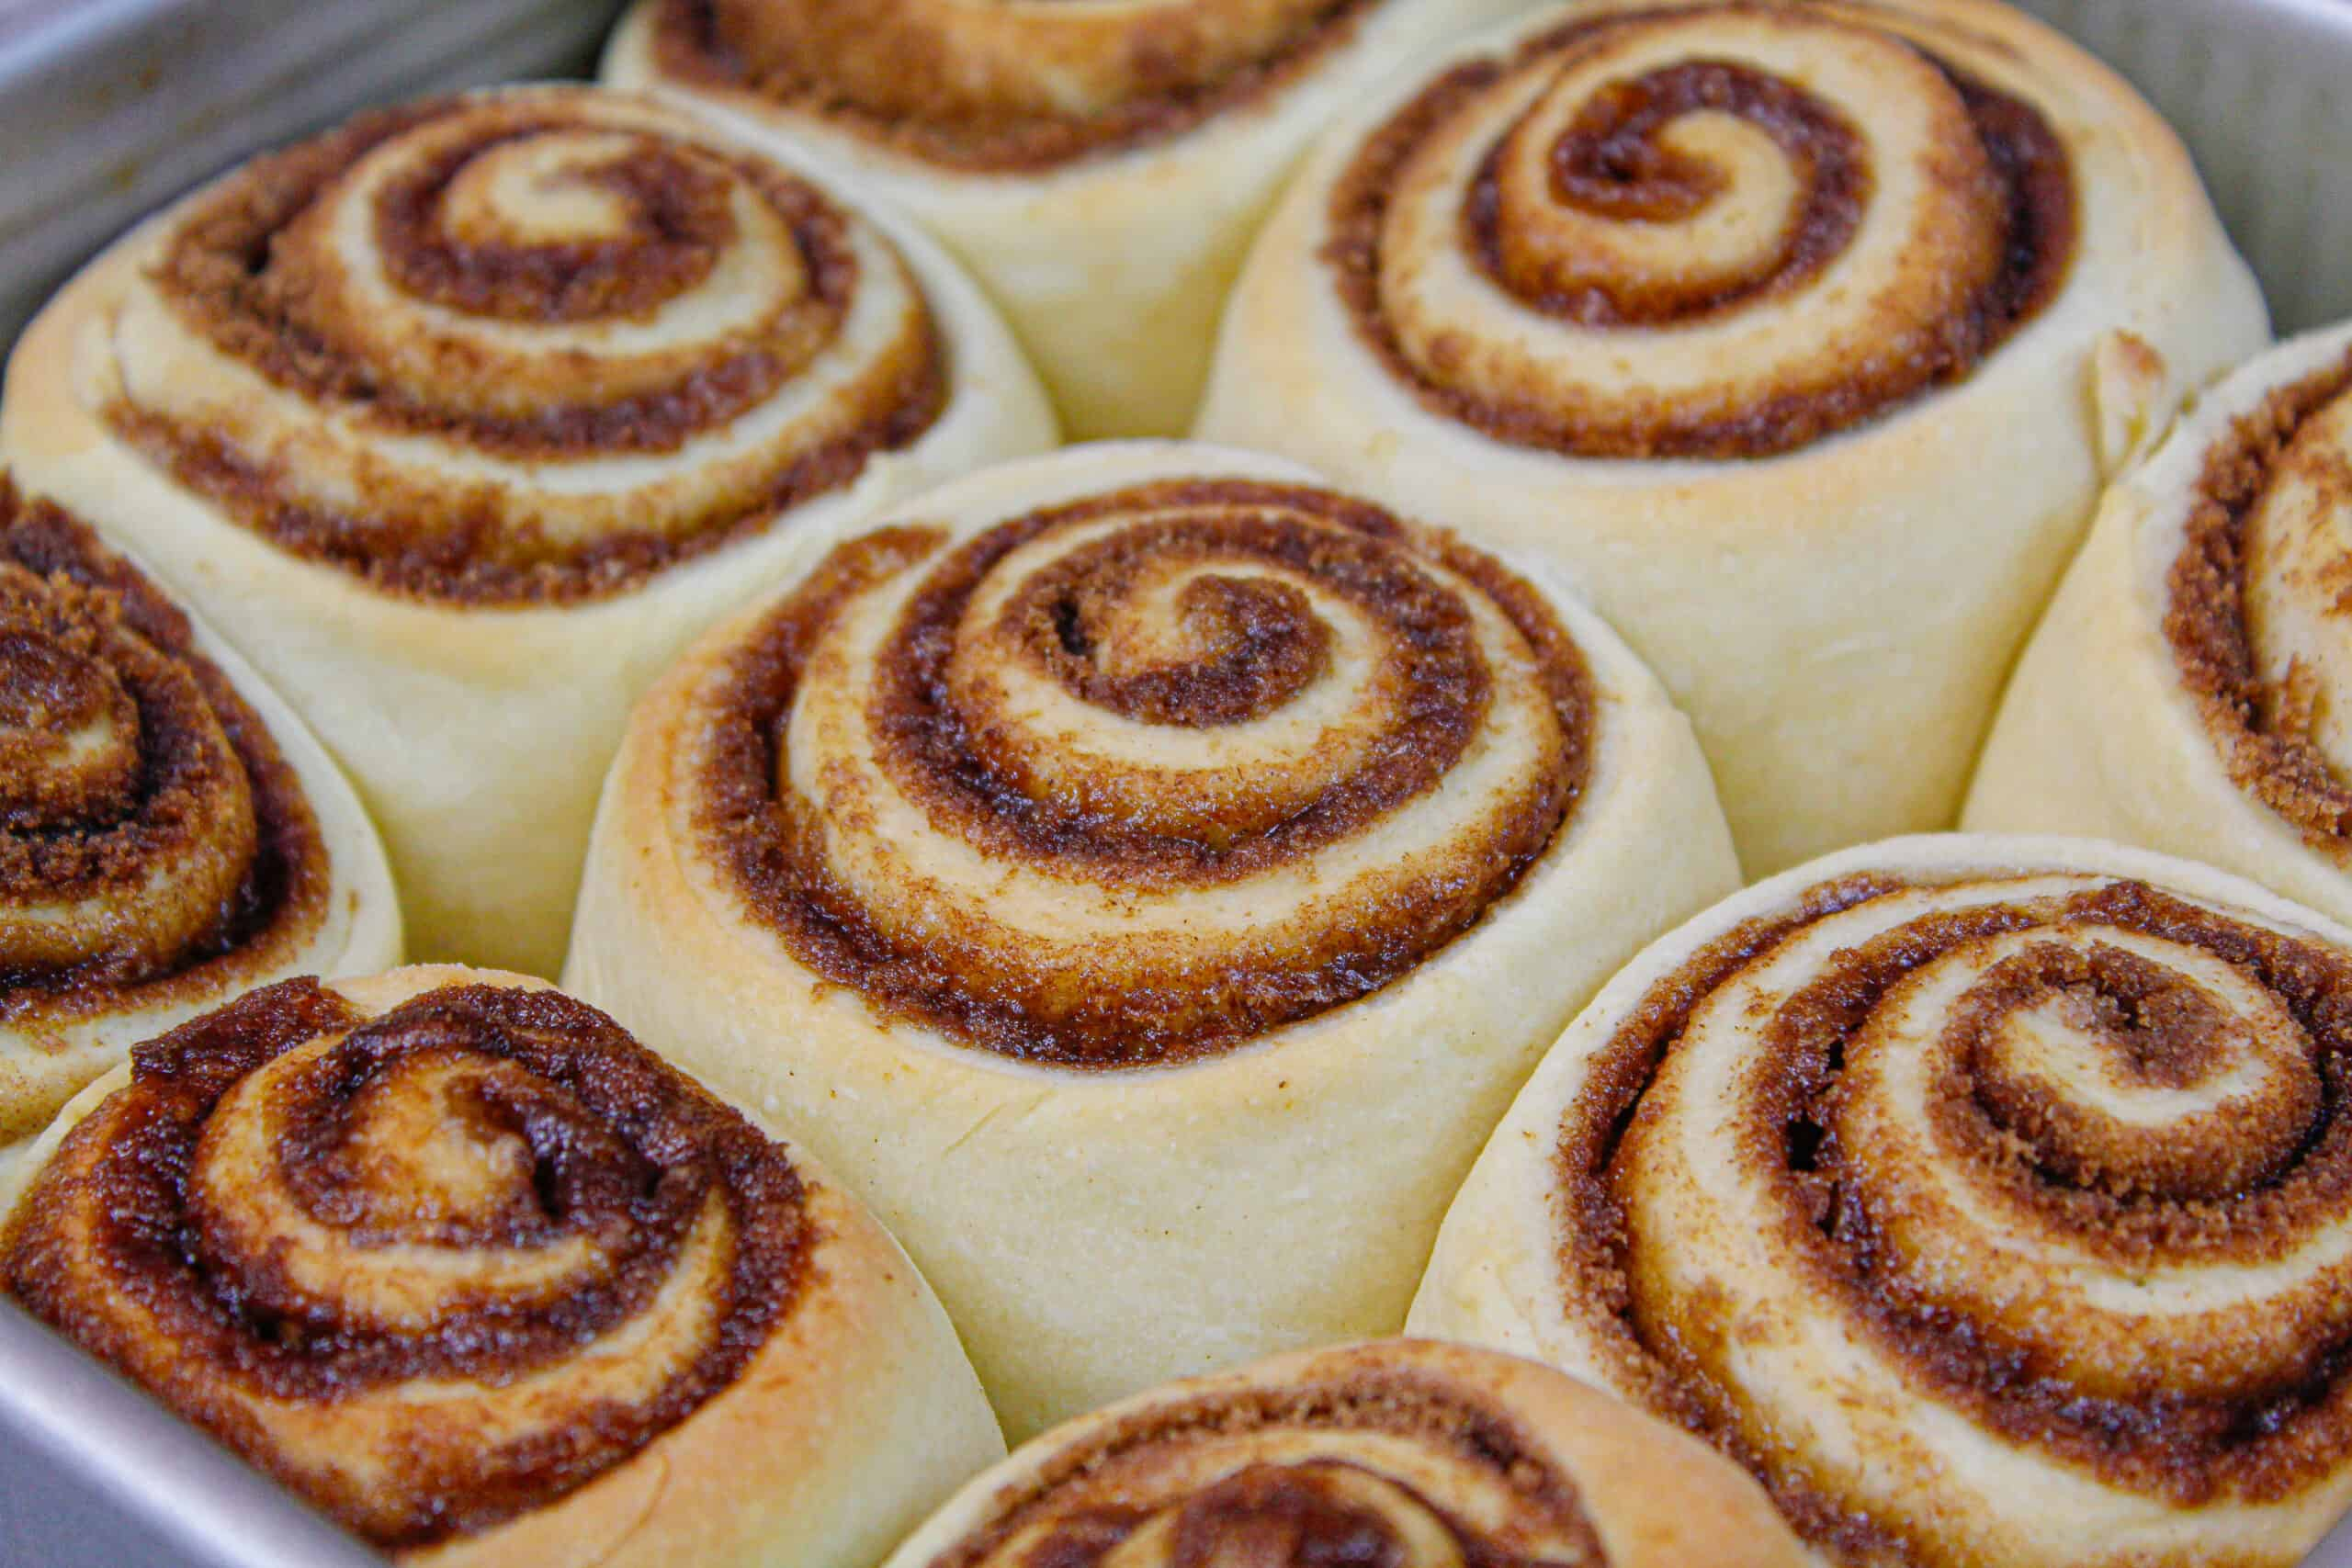 image of baked quick yeast cinnamon rolls, right out of the oven and baked golden brown with gooey centers